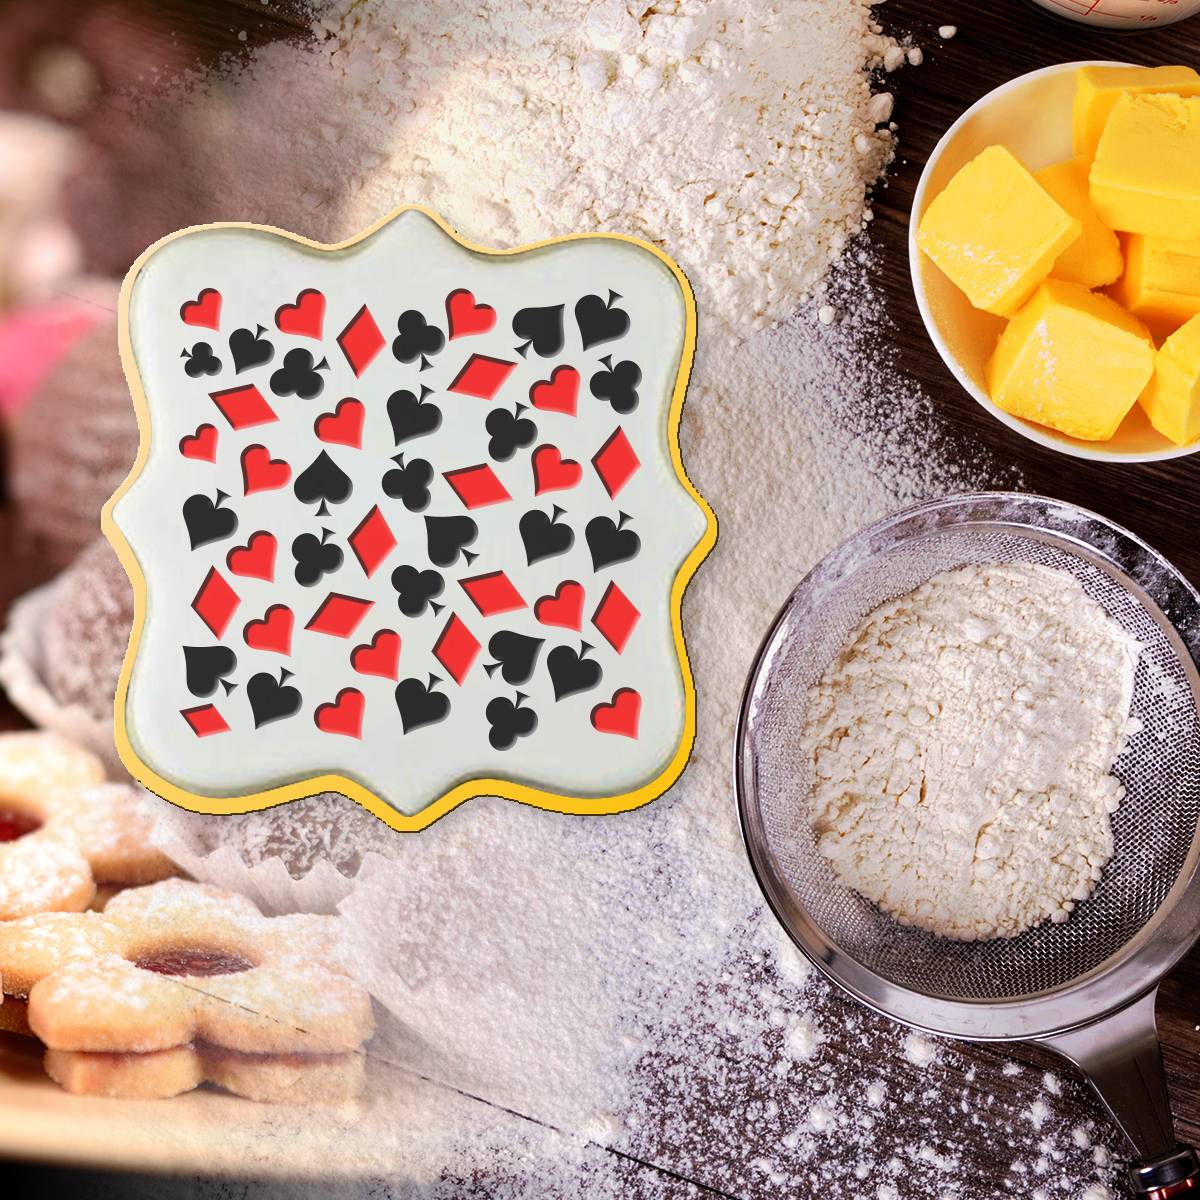 Cookies Pattern Stamp 3D Embosser Pastry Decoration